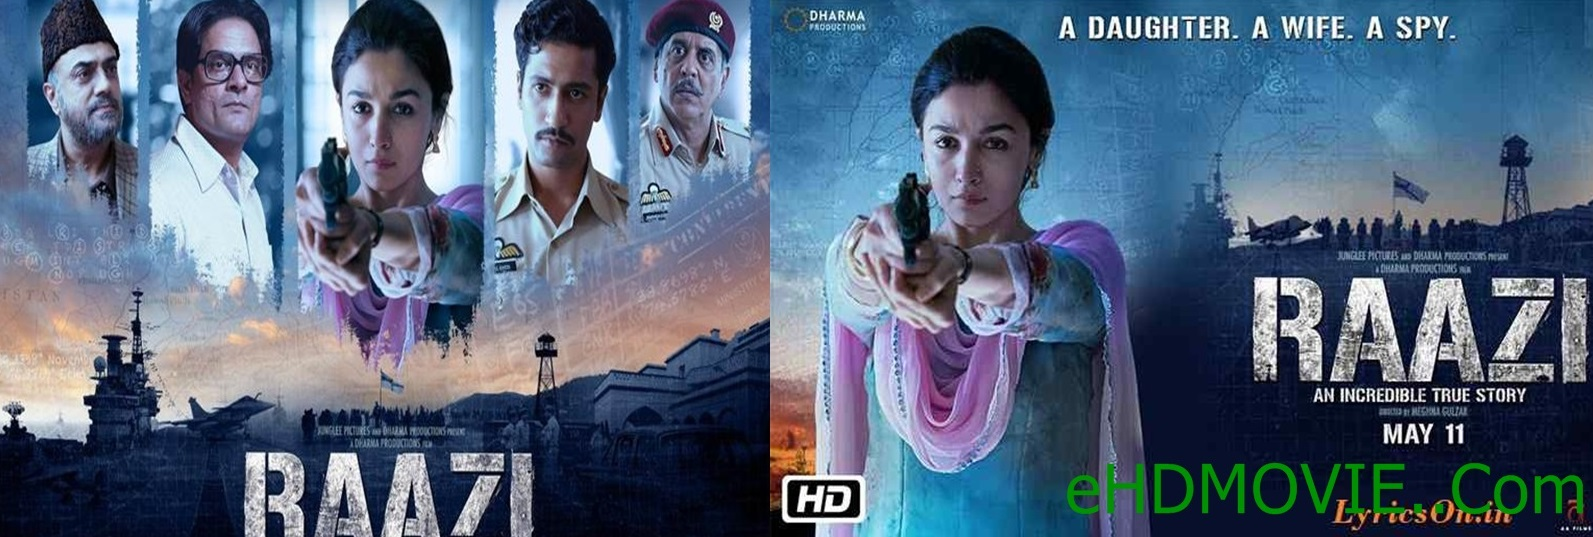 Raazi 2018 Full Movie Hindi 1080p - 720p - HEVC - 480p ORG BRRip 400MB - 550MB - 650MB - 1.1GB - 3.1GB ESubs Free Download